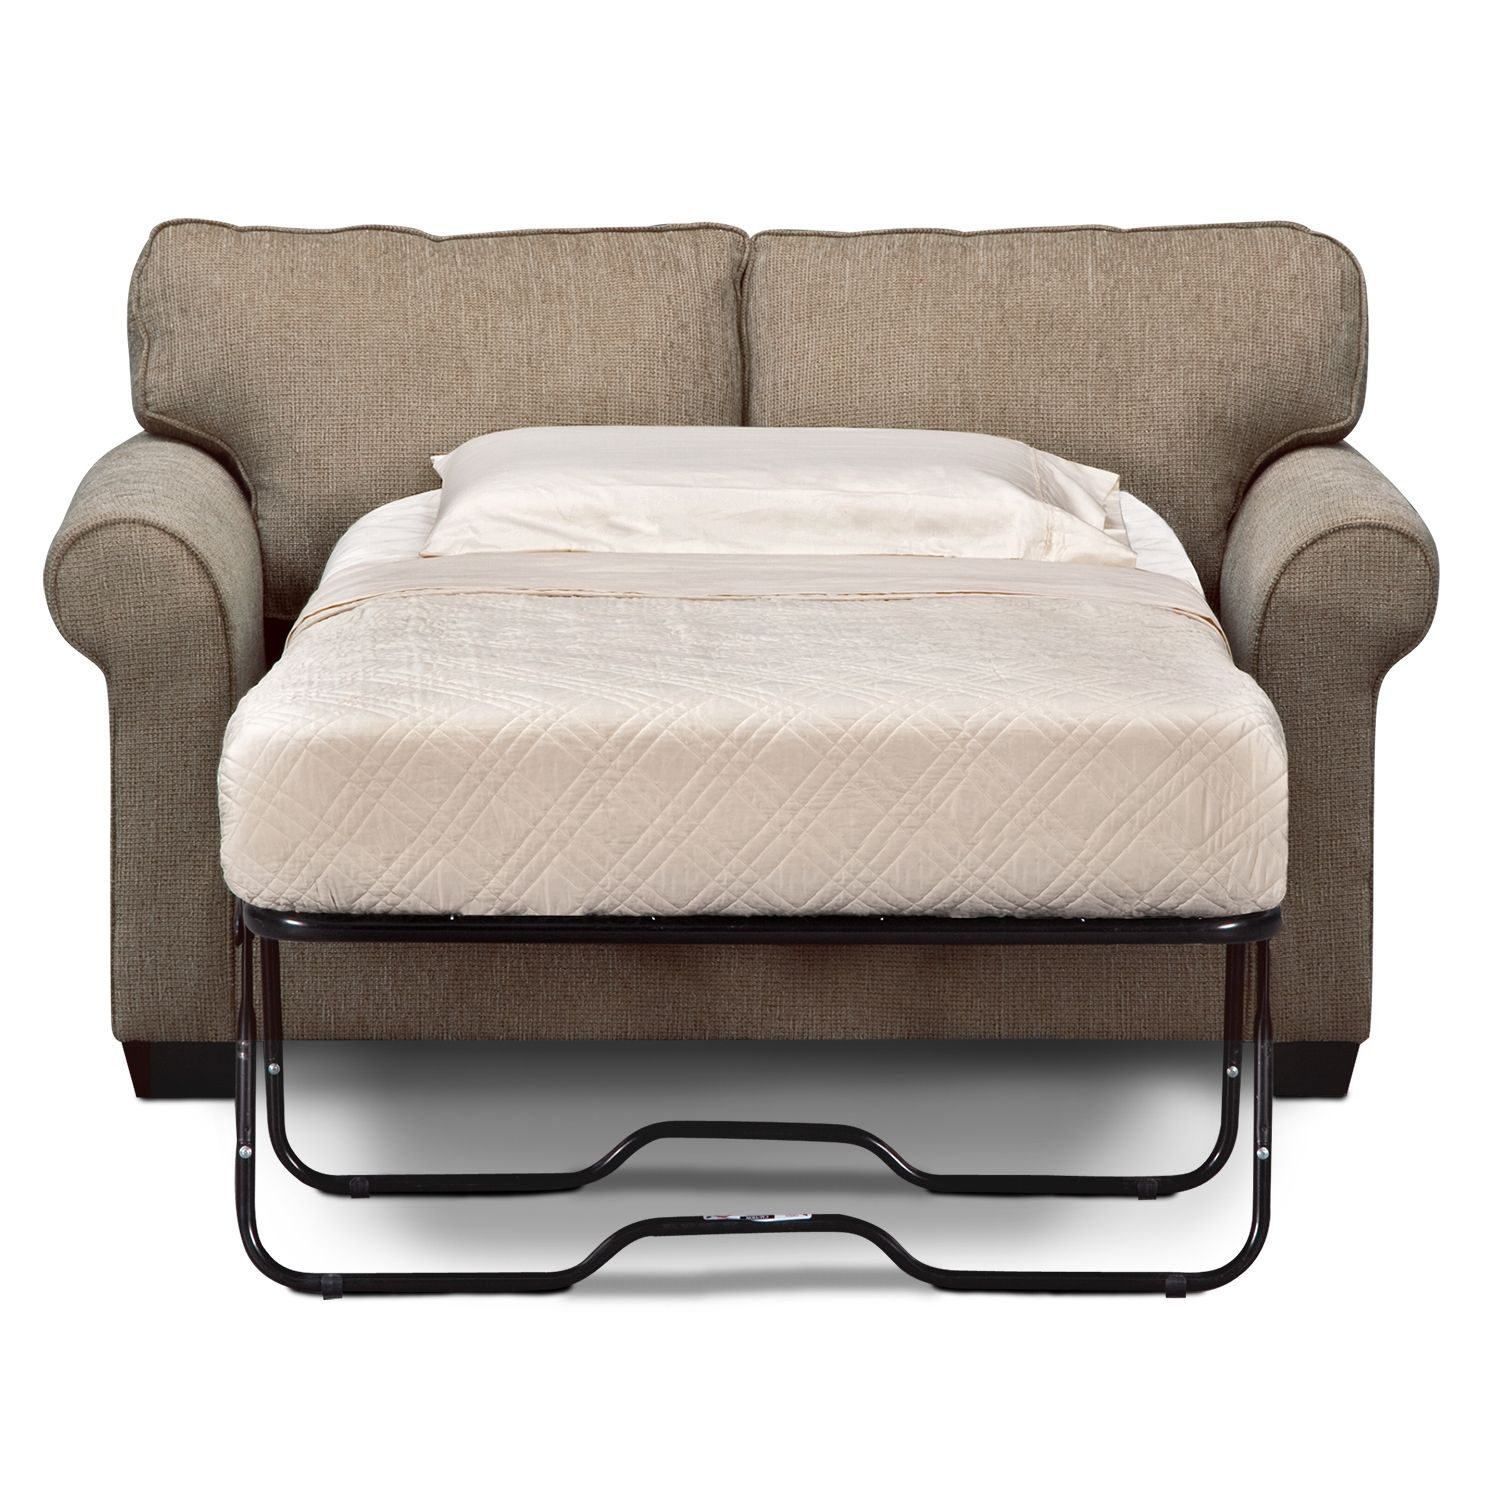 springs loveseat medium storage islands mattress carts box expansive bed mattresses hide stands home a toppers benches chairs tv kitchen compact office